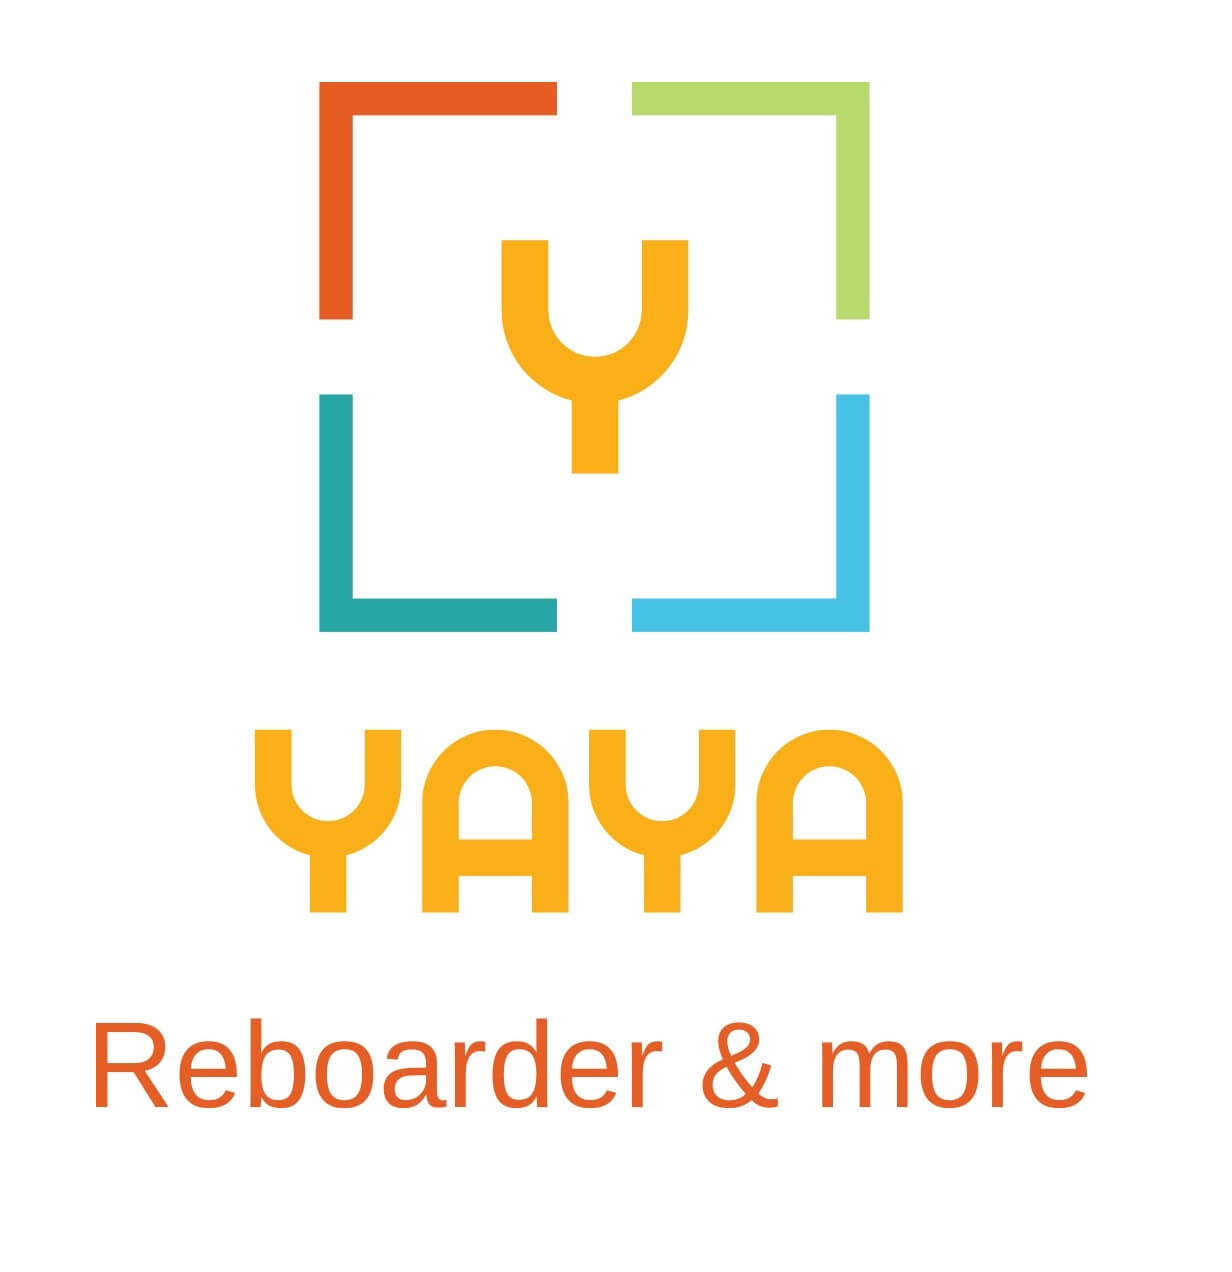 Wir stellen vor: Yaya – Reboarder and more